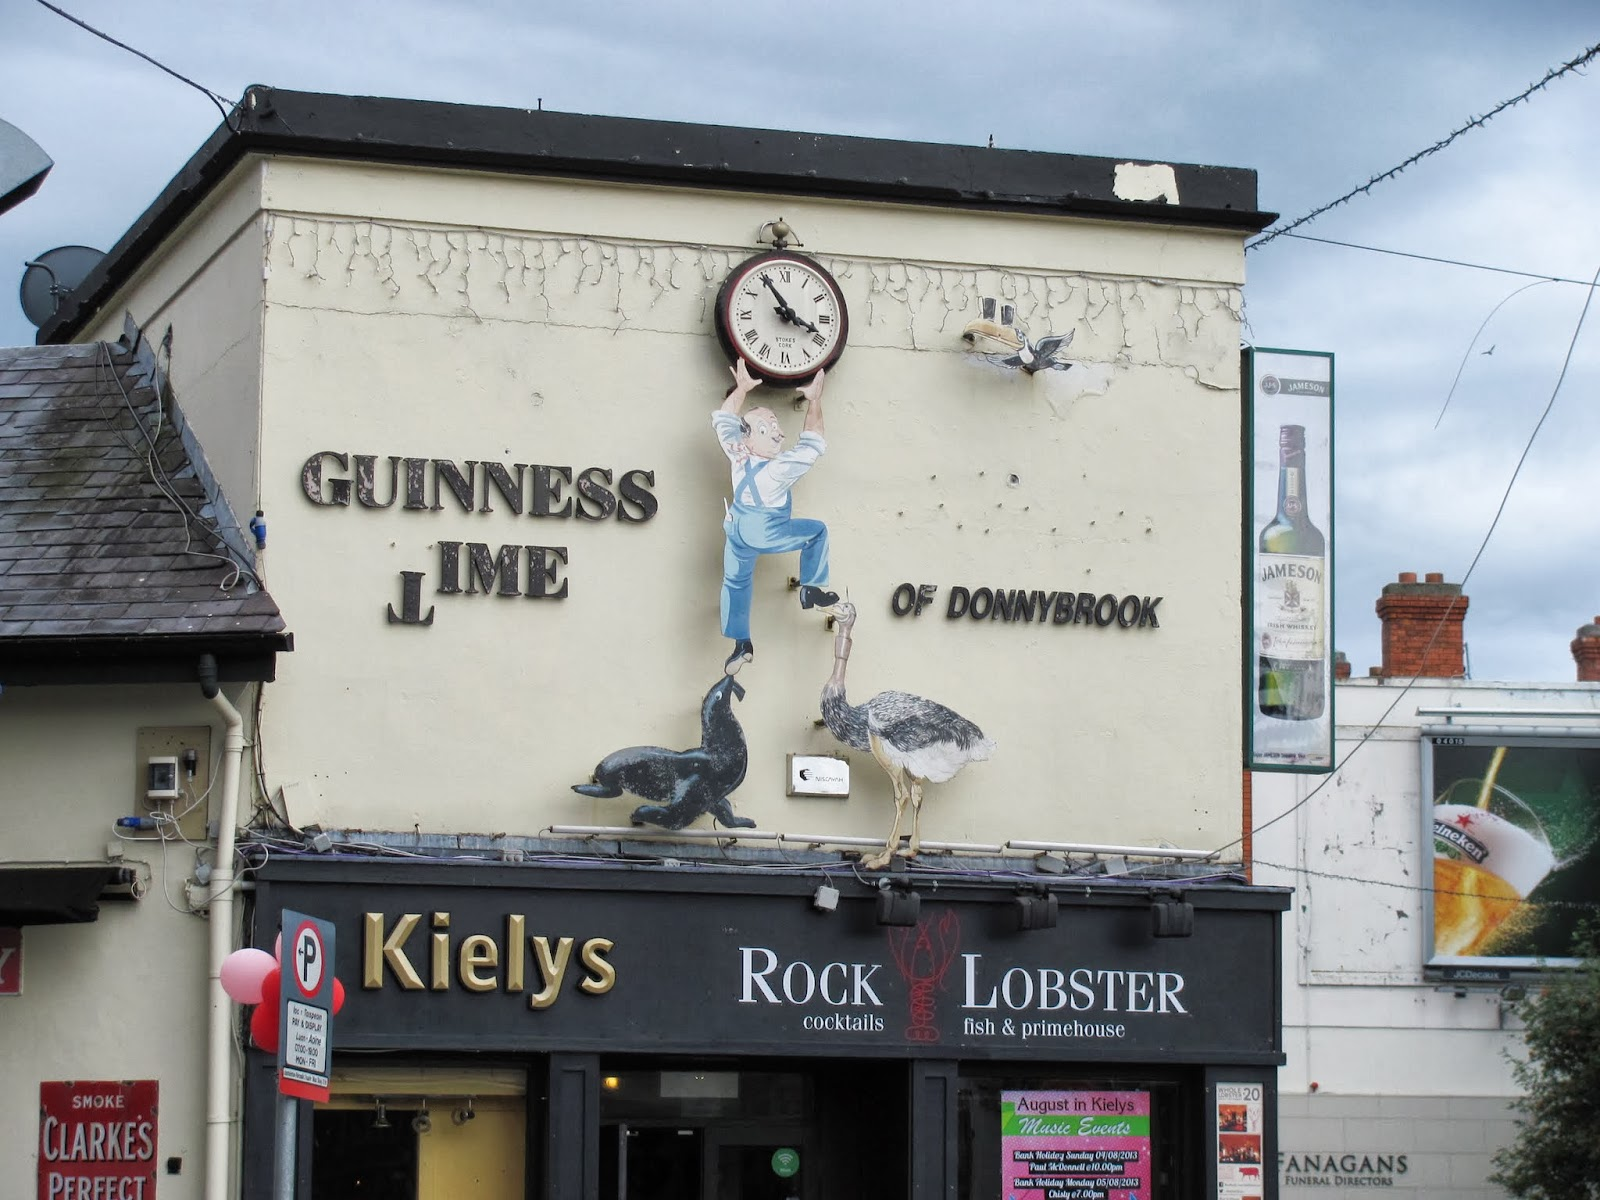 The entrance to the pub Kiely's of Donnybrook in Dublin, Ireland